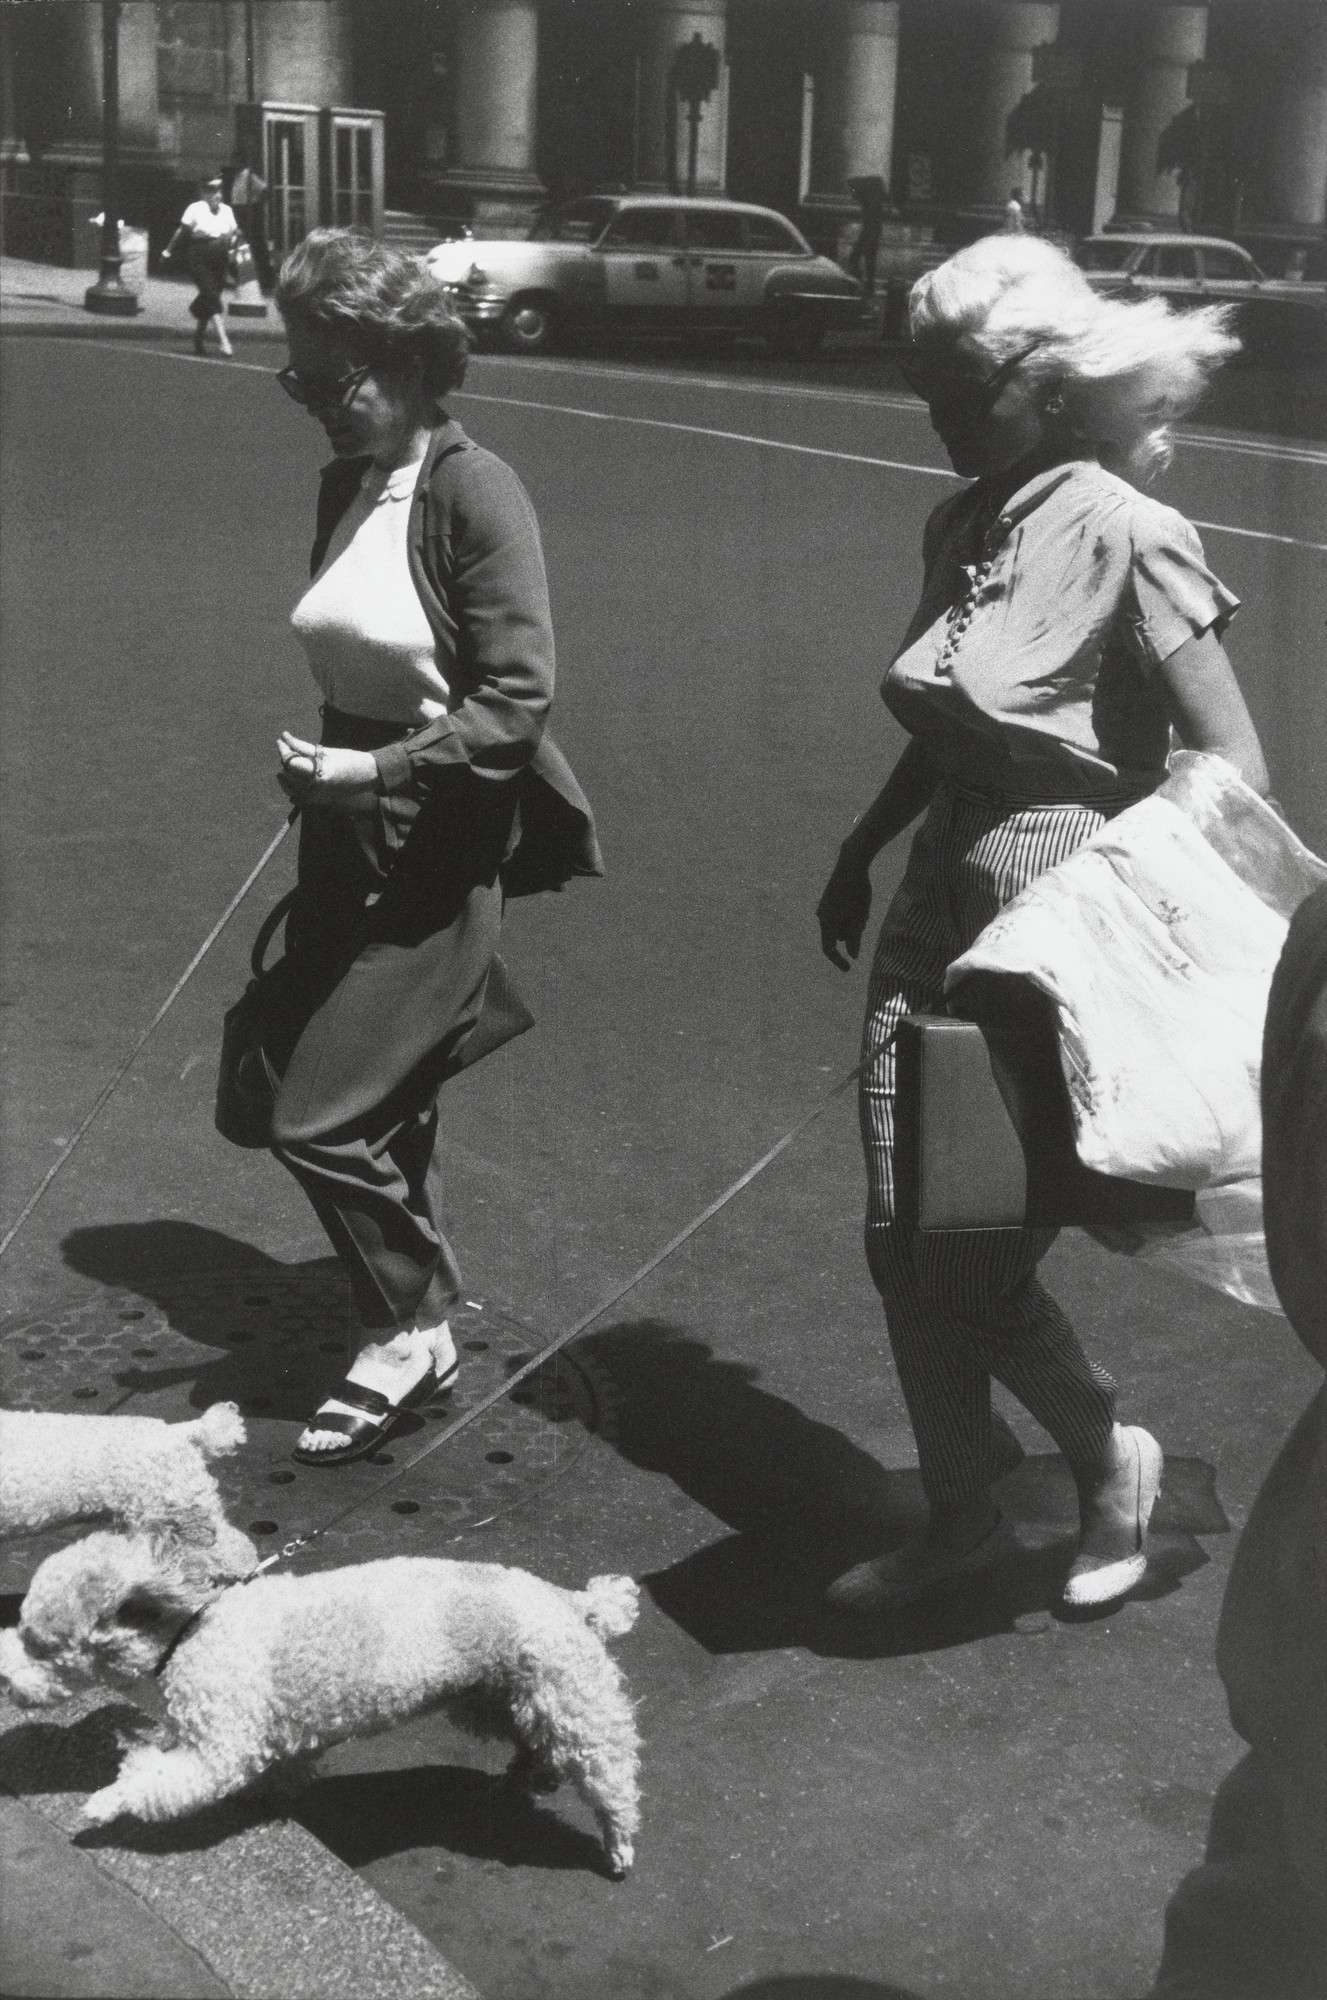 Garry Winogrand. Untitled from Women are Beautiful. 1950s